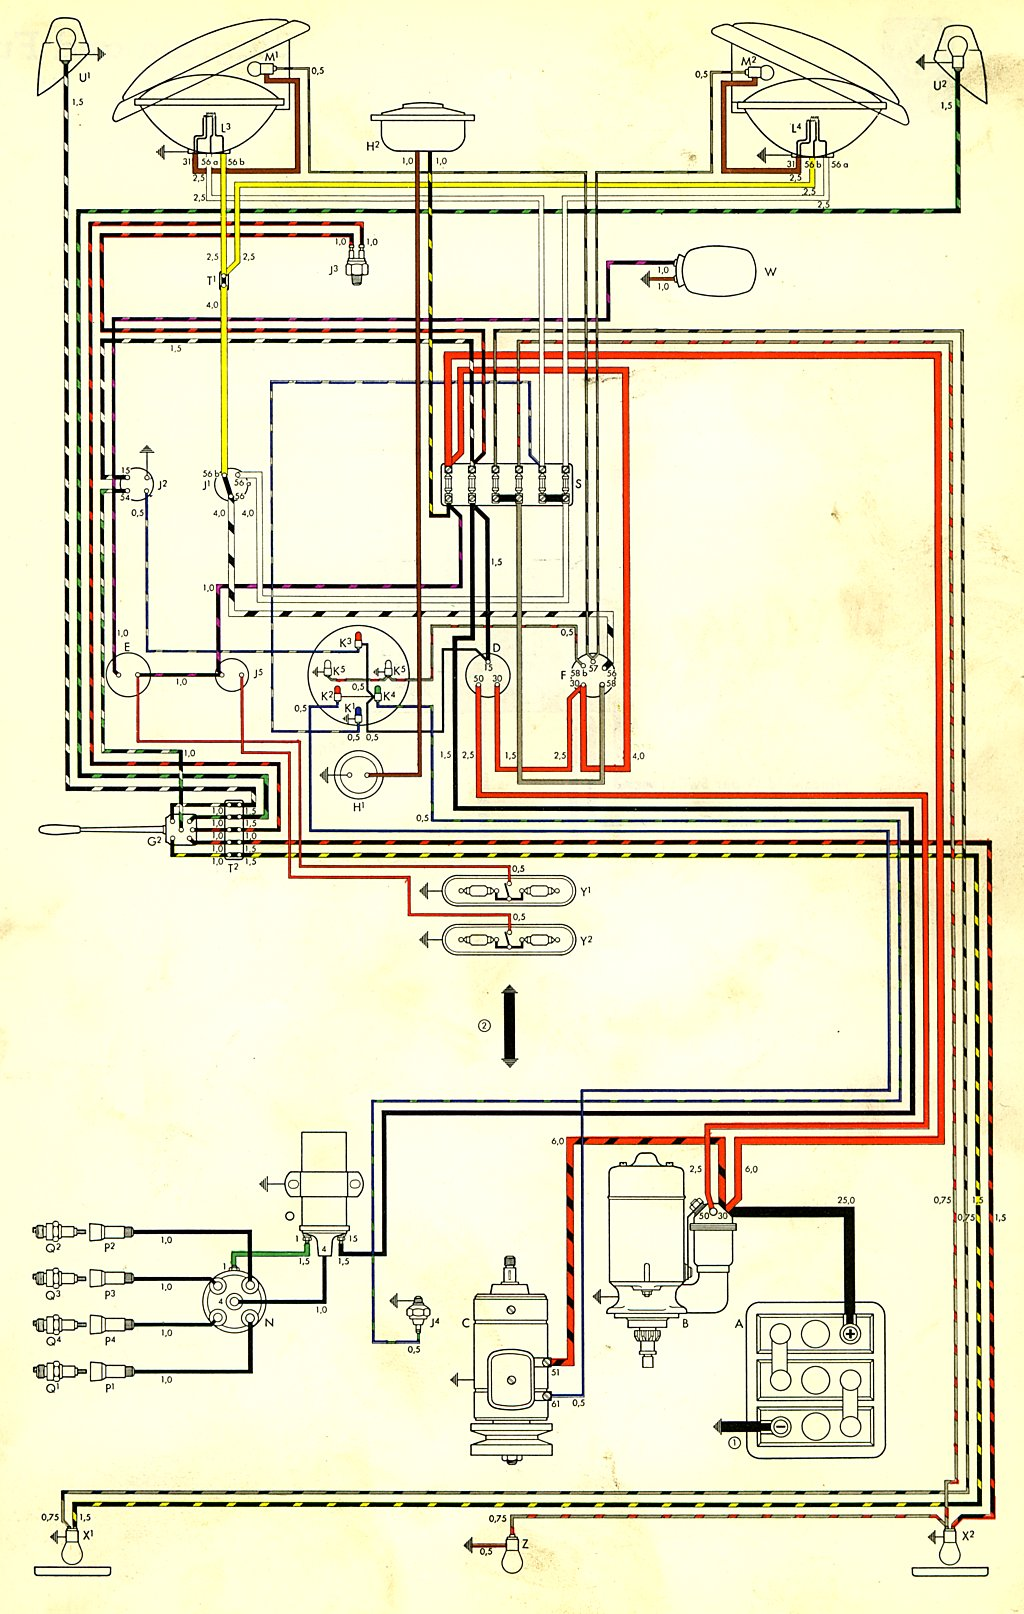 Type 2 Wiring Diagrams Diagram Also 1988 Chevy 1500 Further Gm Radio